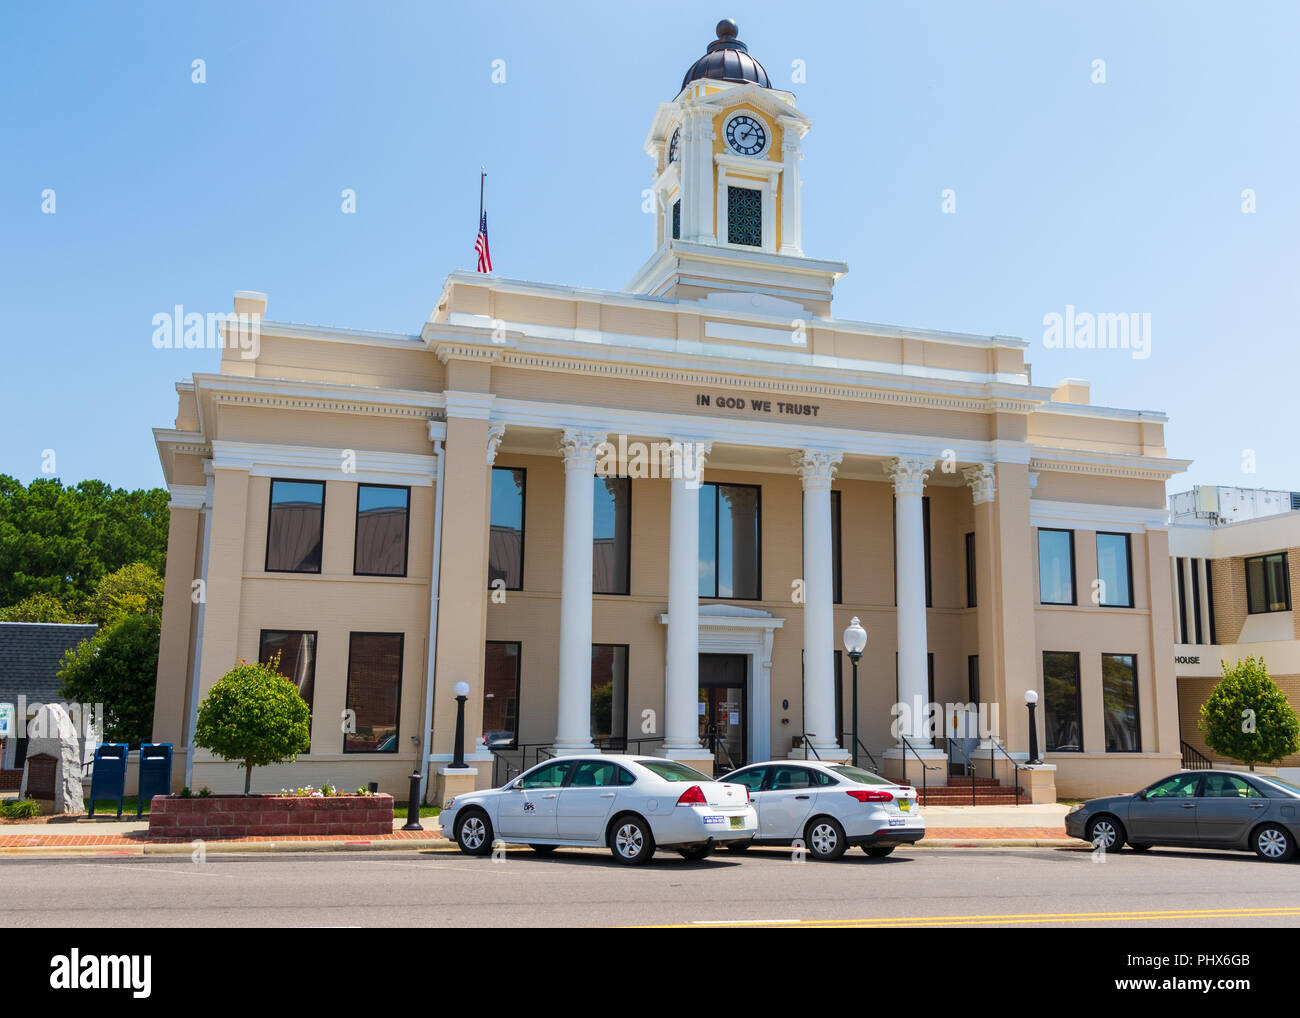 MOCKSVILLE, NC, USA-8/30/18: The Davie County courthouse,  a neo-classsical revival style structure, built in 1909. - Stock Image